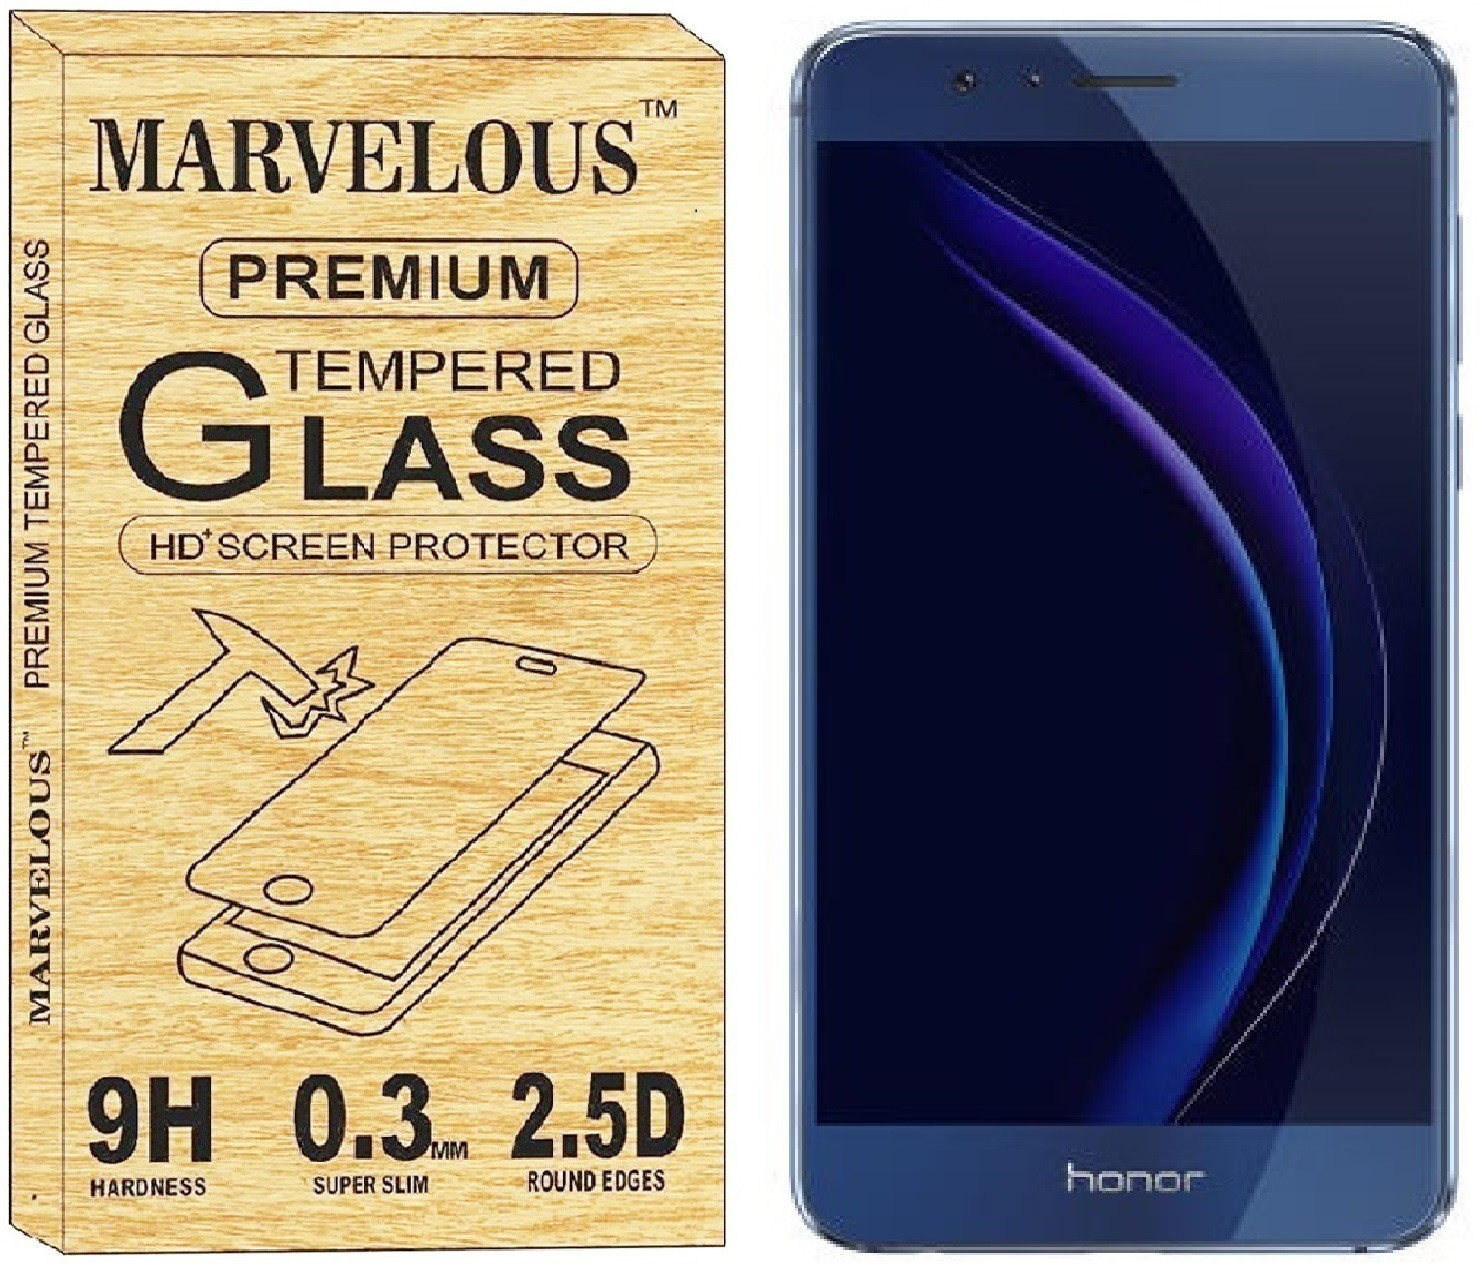 Marvelous Tempered Glass Guard for Honor 8